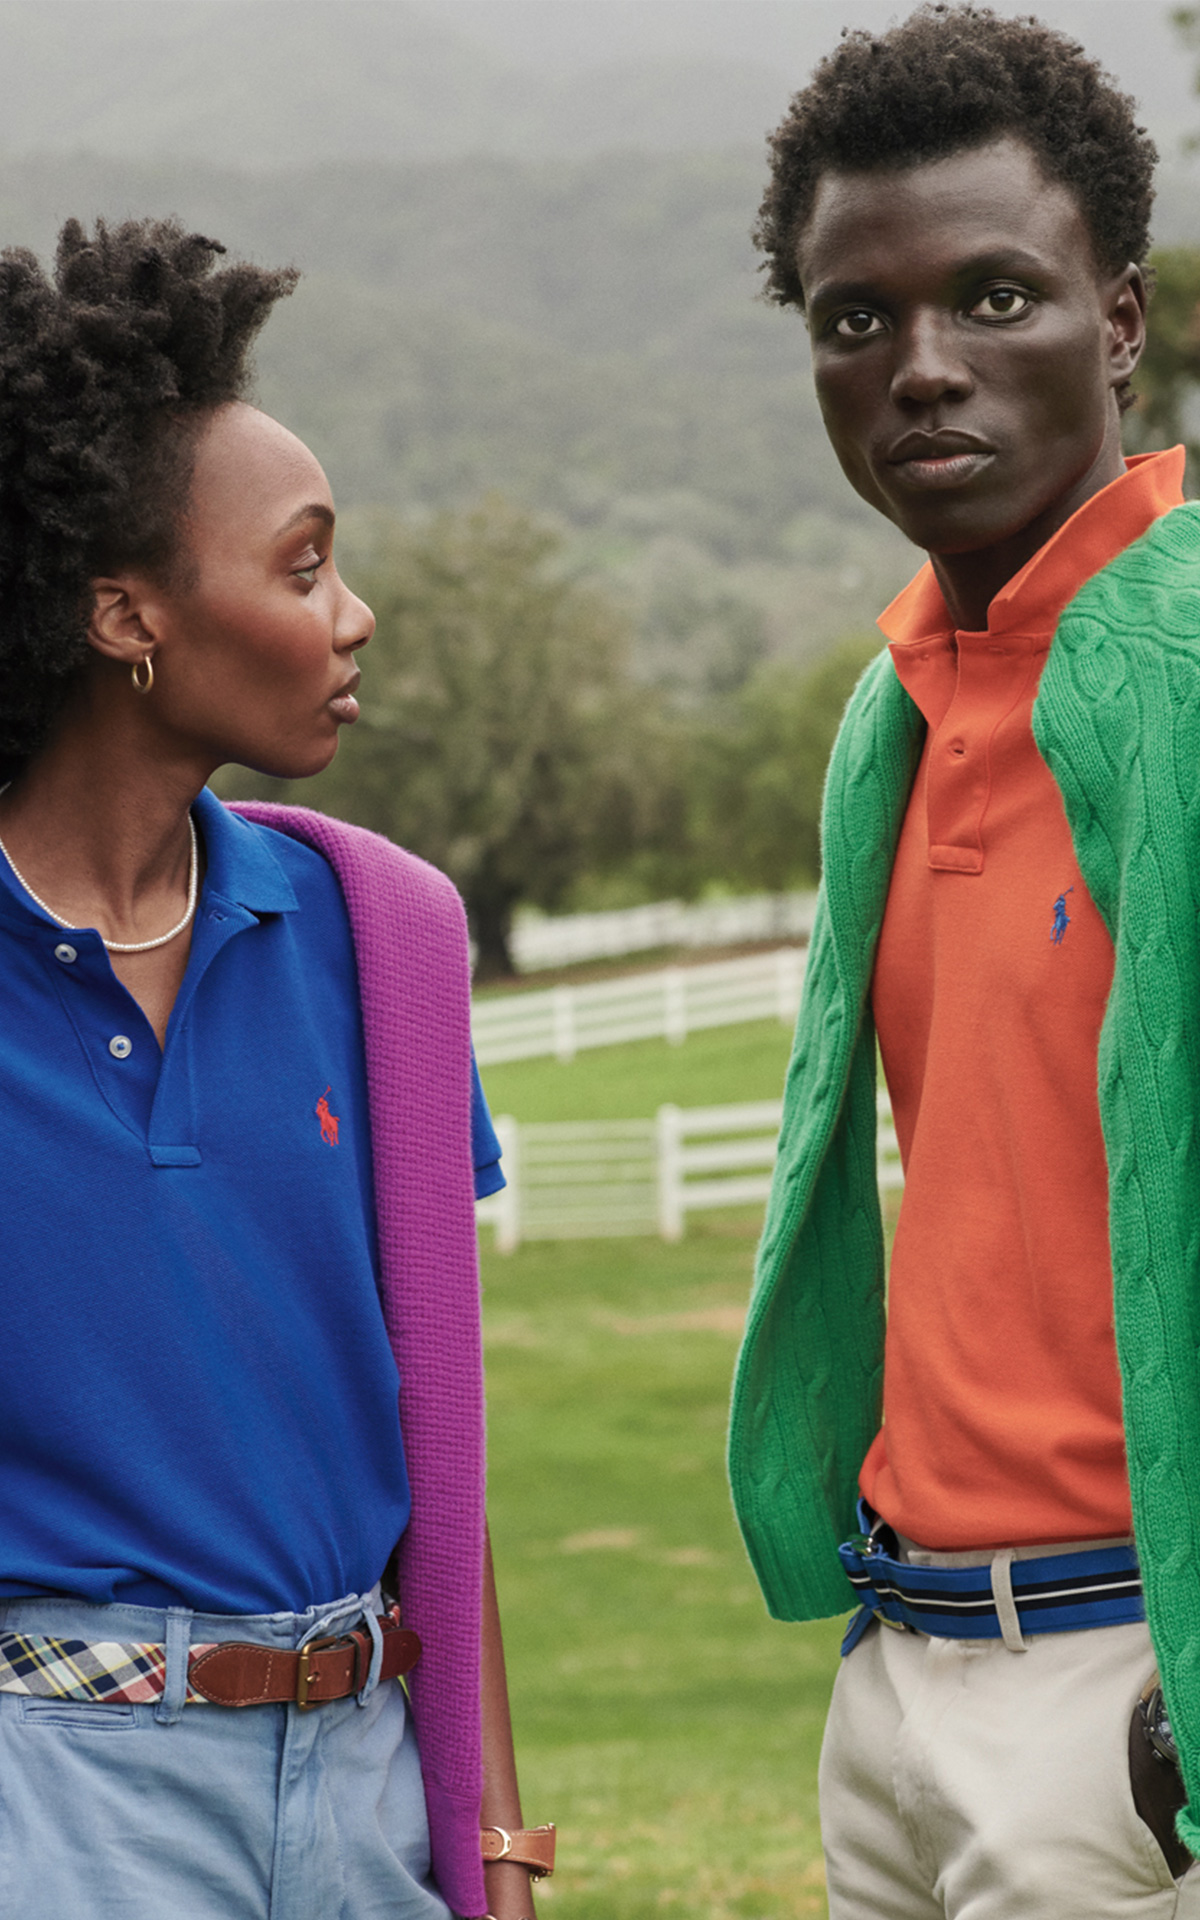 Polo Ralph Lauren at The Bicester Village Shopping Collection